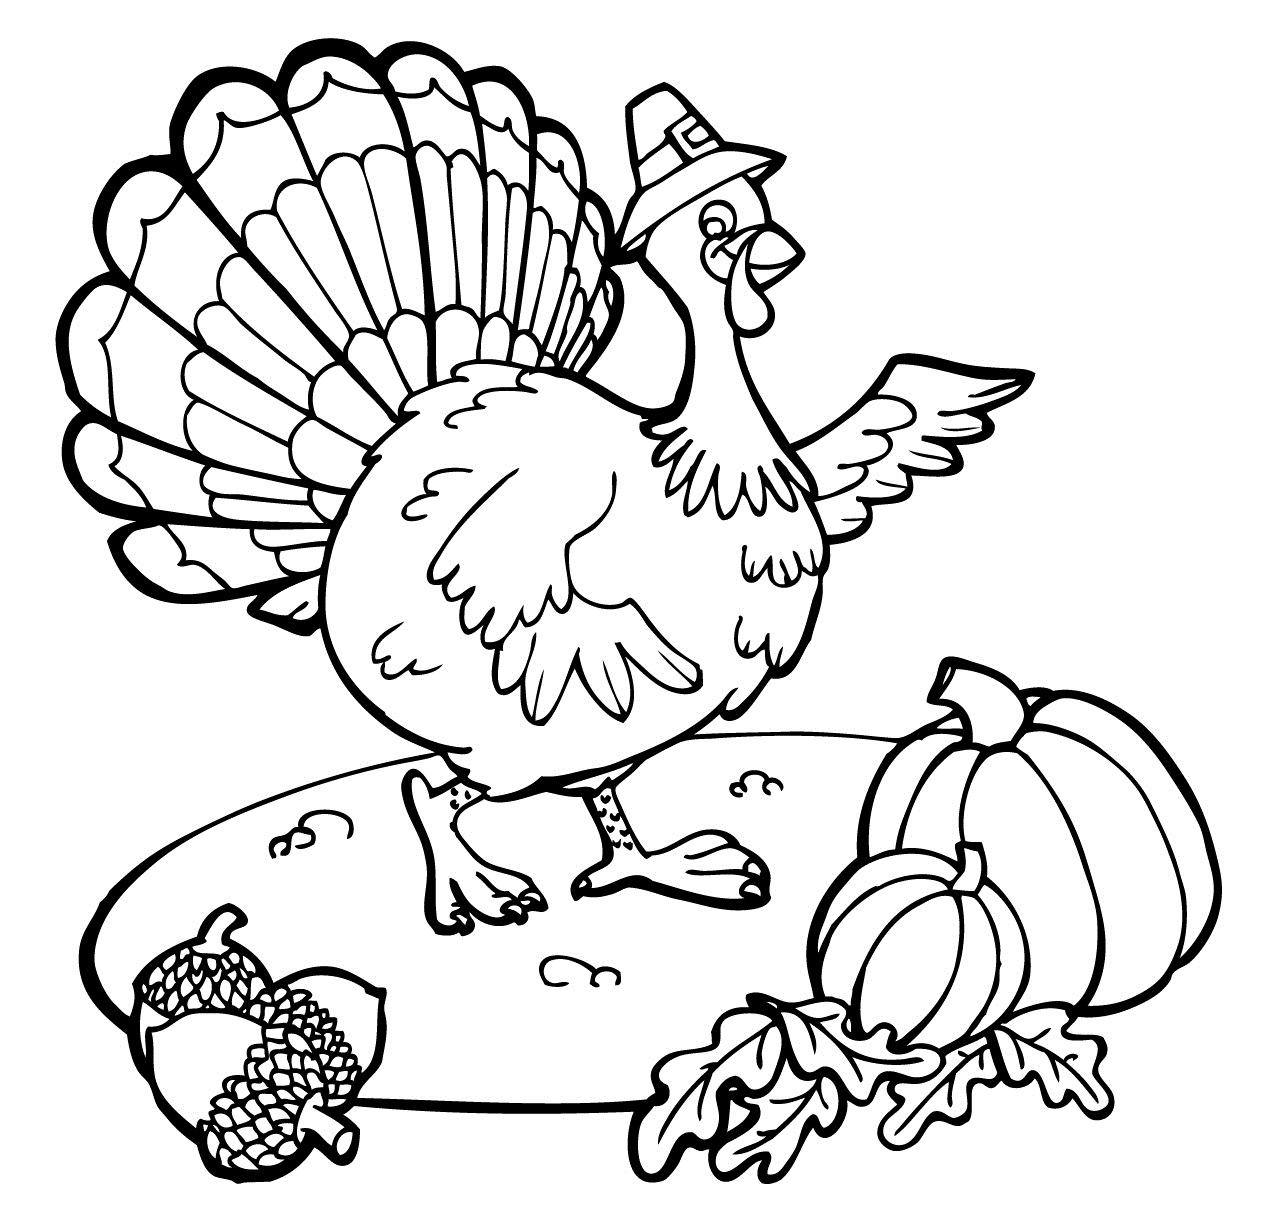 Thanksgiving Color Pages to Print 3161 1405—986 to Print Of Free Preschool Coloring Pages Page for Kindergarten School Download